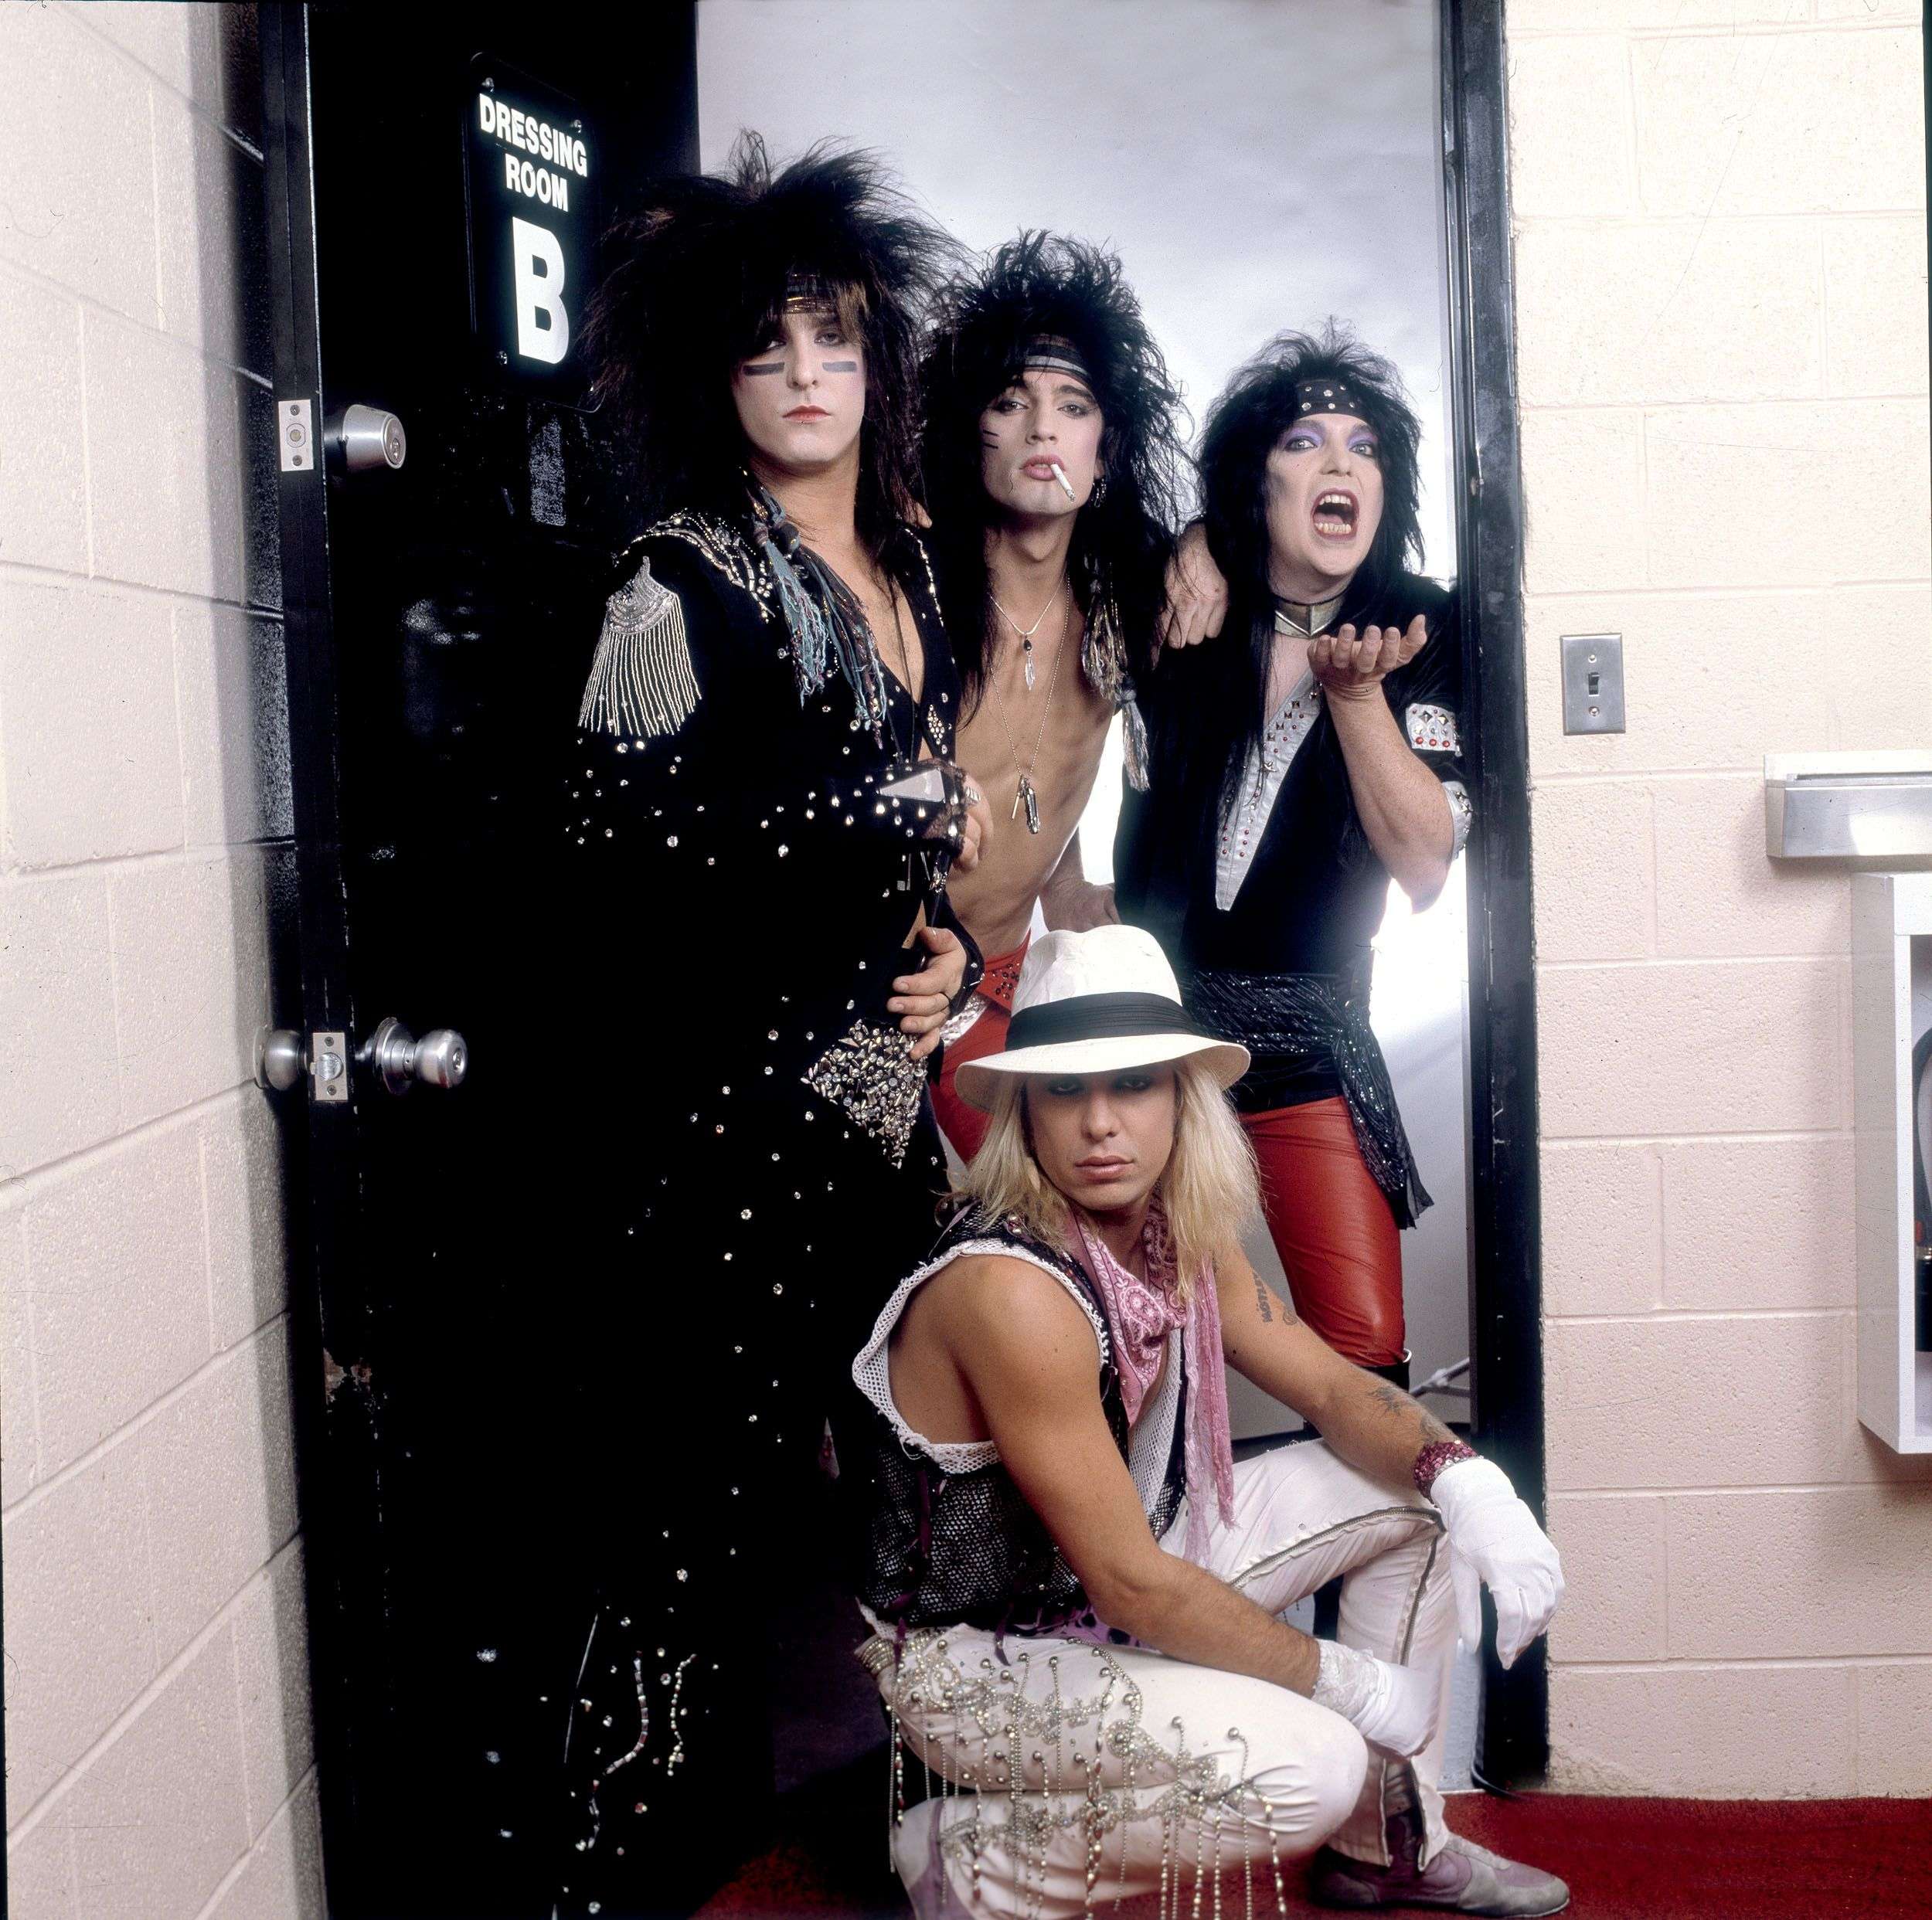 Portrait of Mötley Crüe backstage at the Rosemont Horizon in Rosemont, Illinois, November 1, 1985.